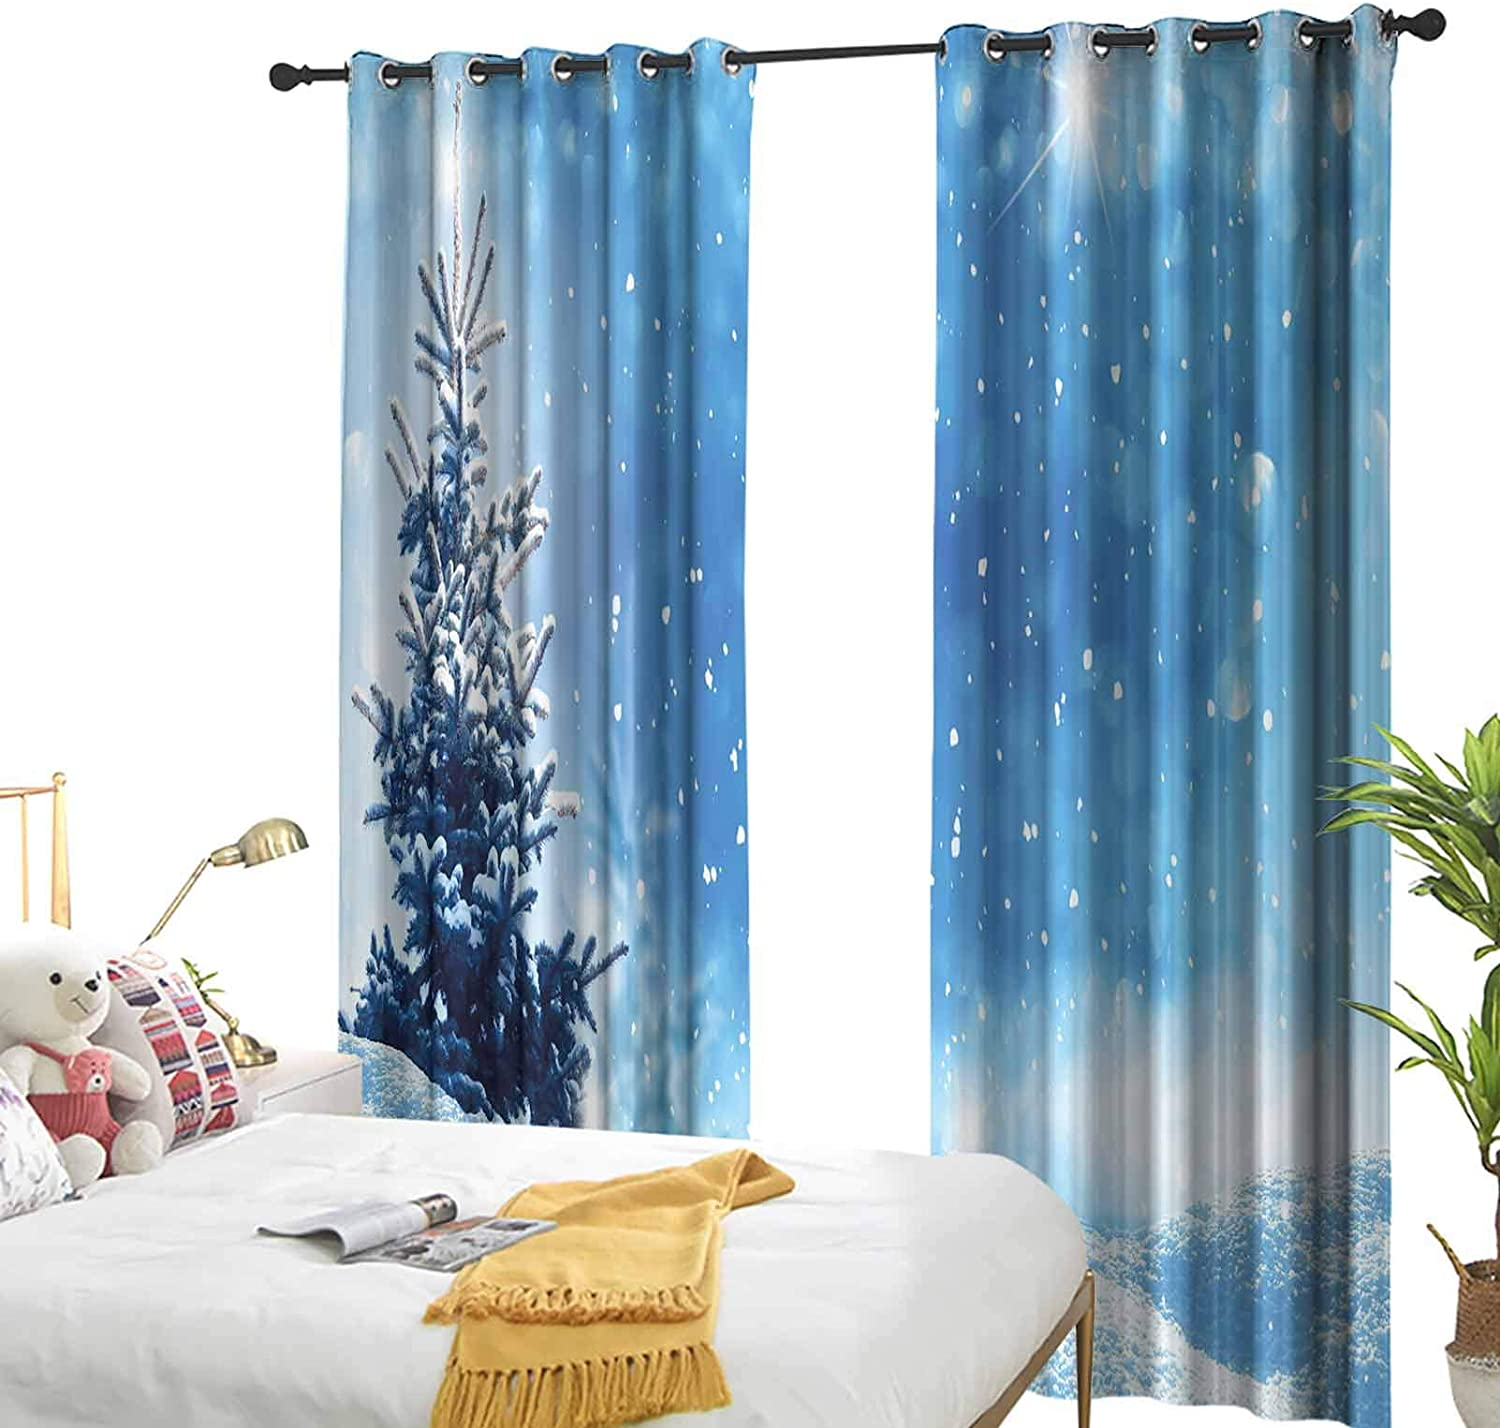 Winter Grommet Curtains for Girls Limited Special Price of Artistic Room Rendition Sno Max 60% OFF